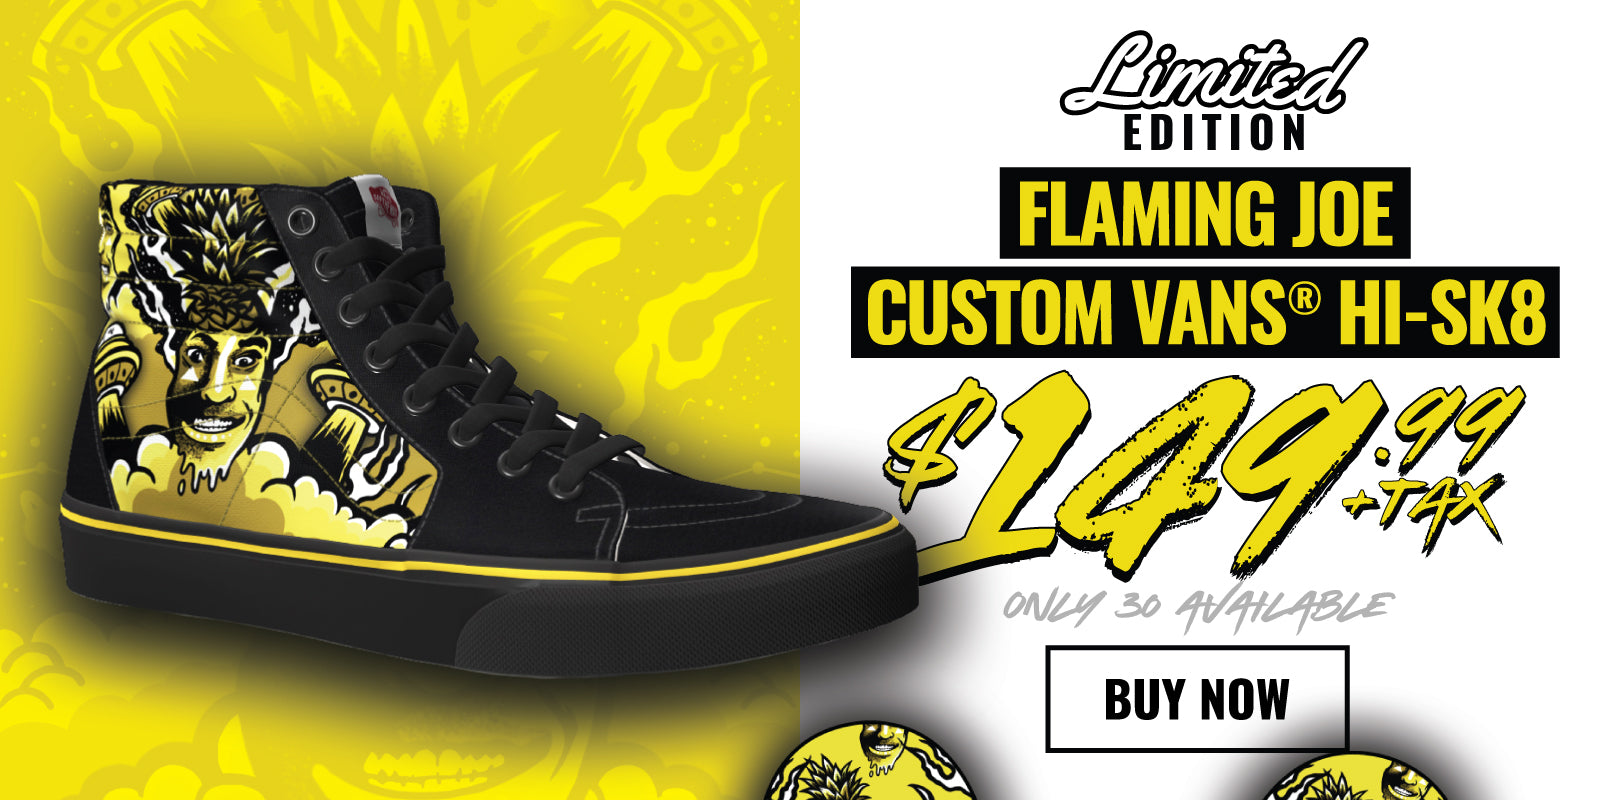 Limited Edition Custom Flaming Joe Vans